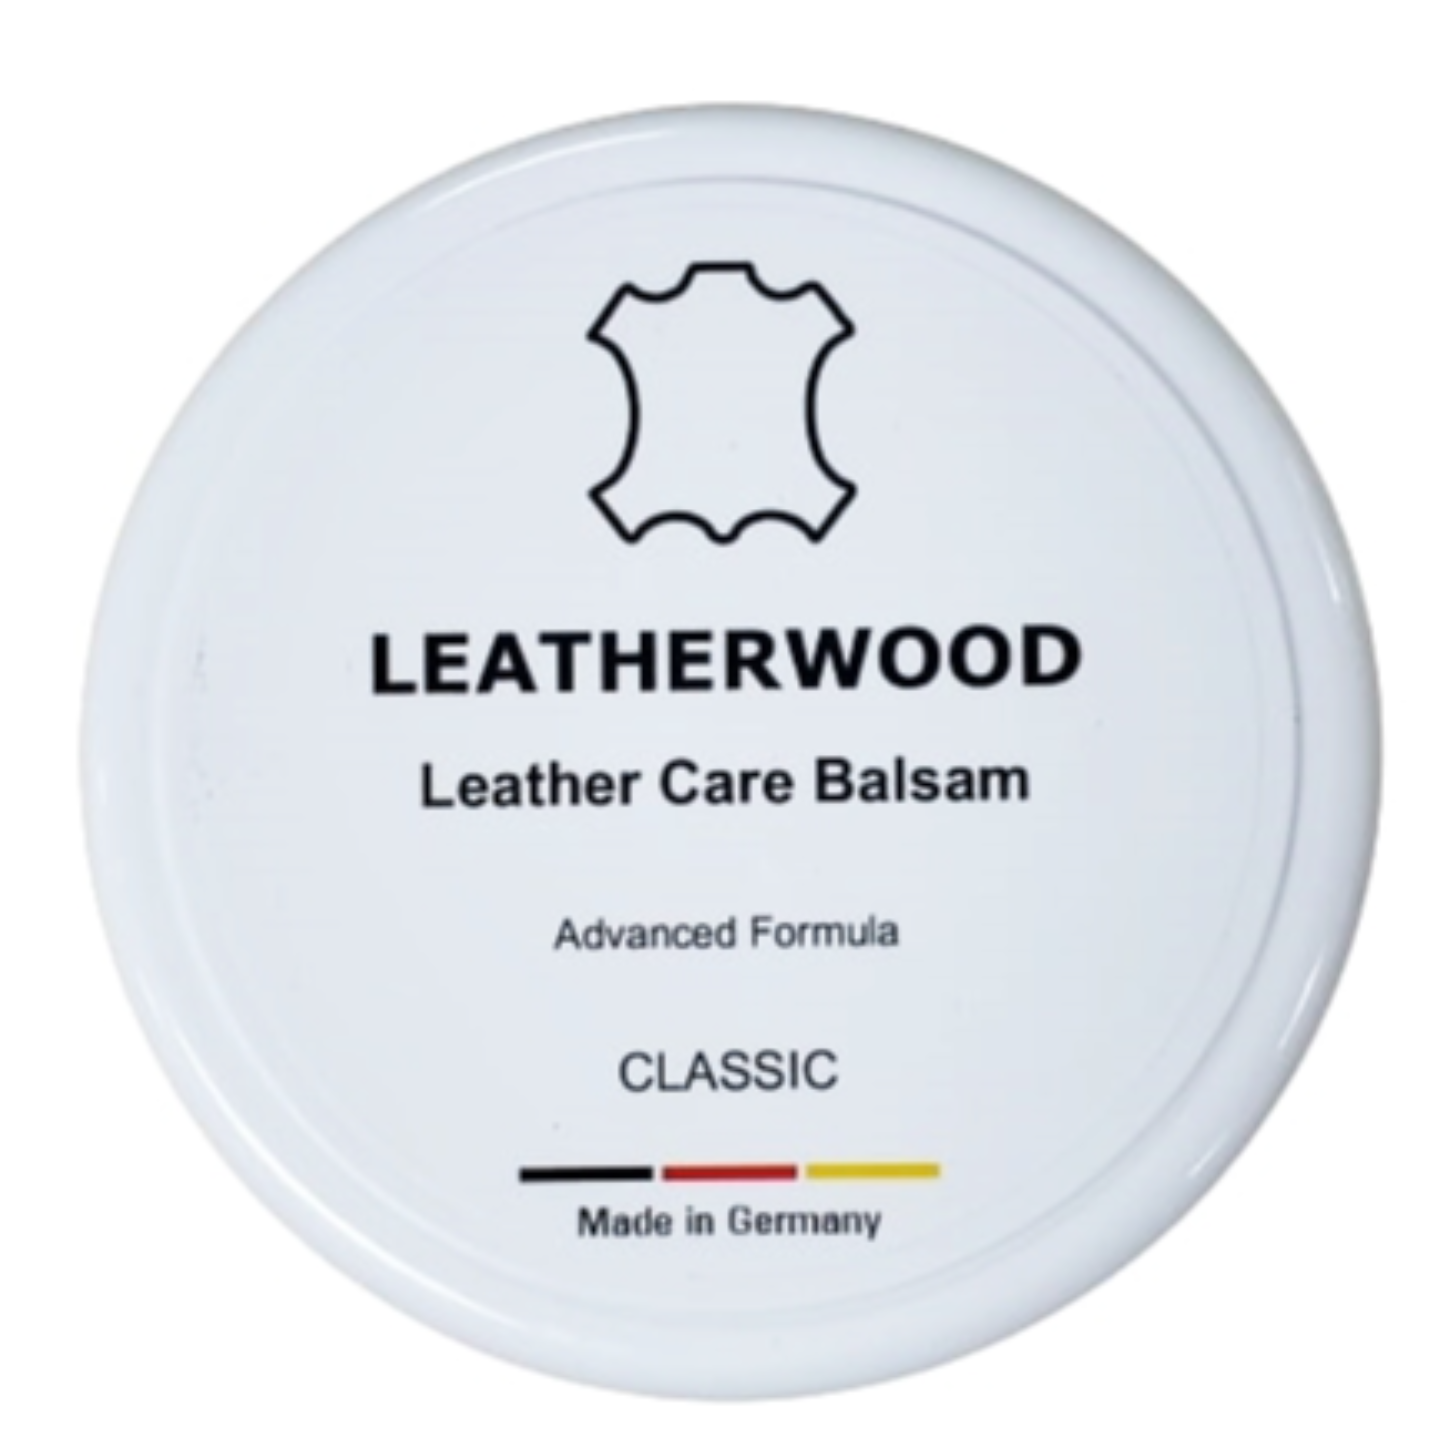 Leatherwood Balsam 250 ml - Original - Cleaner, Conditioner, Water Repellent - All Leathers including Shoes, Handbags, Garments, Furniture, Automotive Leathers - From Germany